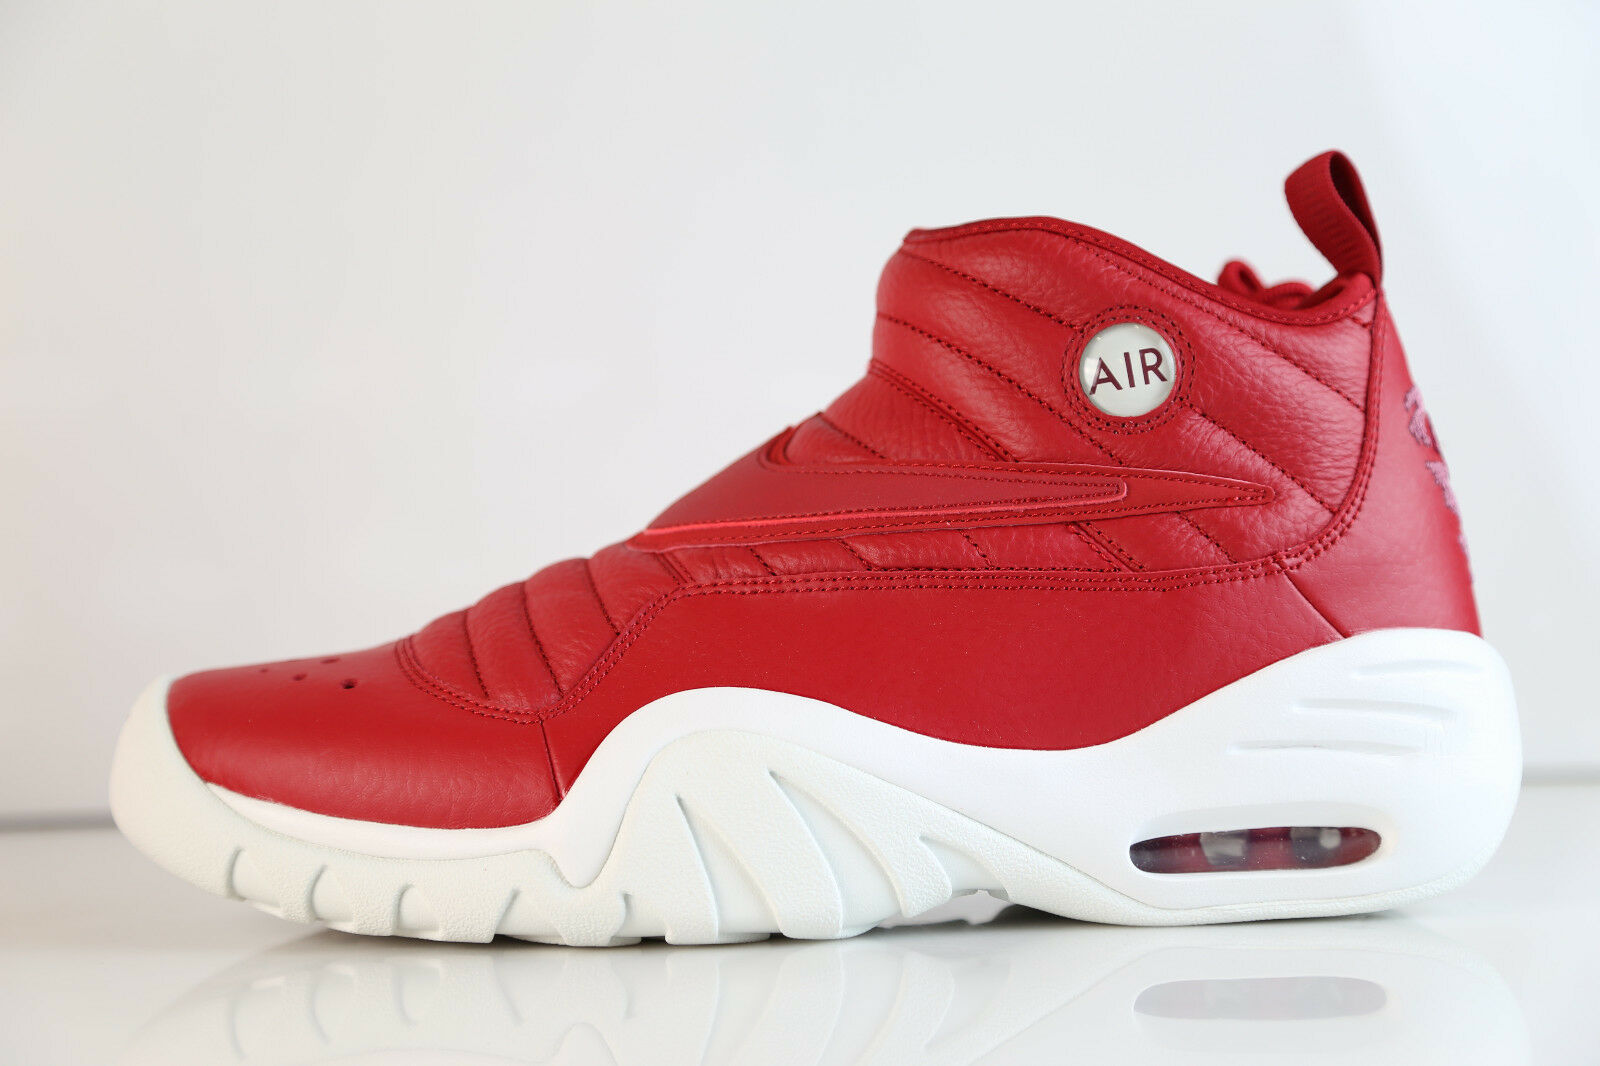 Nike Air Shake NDestrukt Gym Red Summit White 880869-600 9-13 max generation